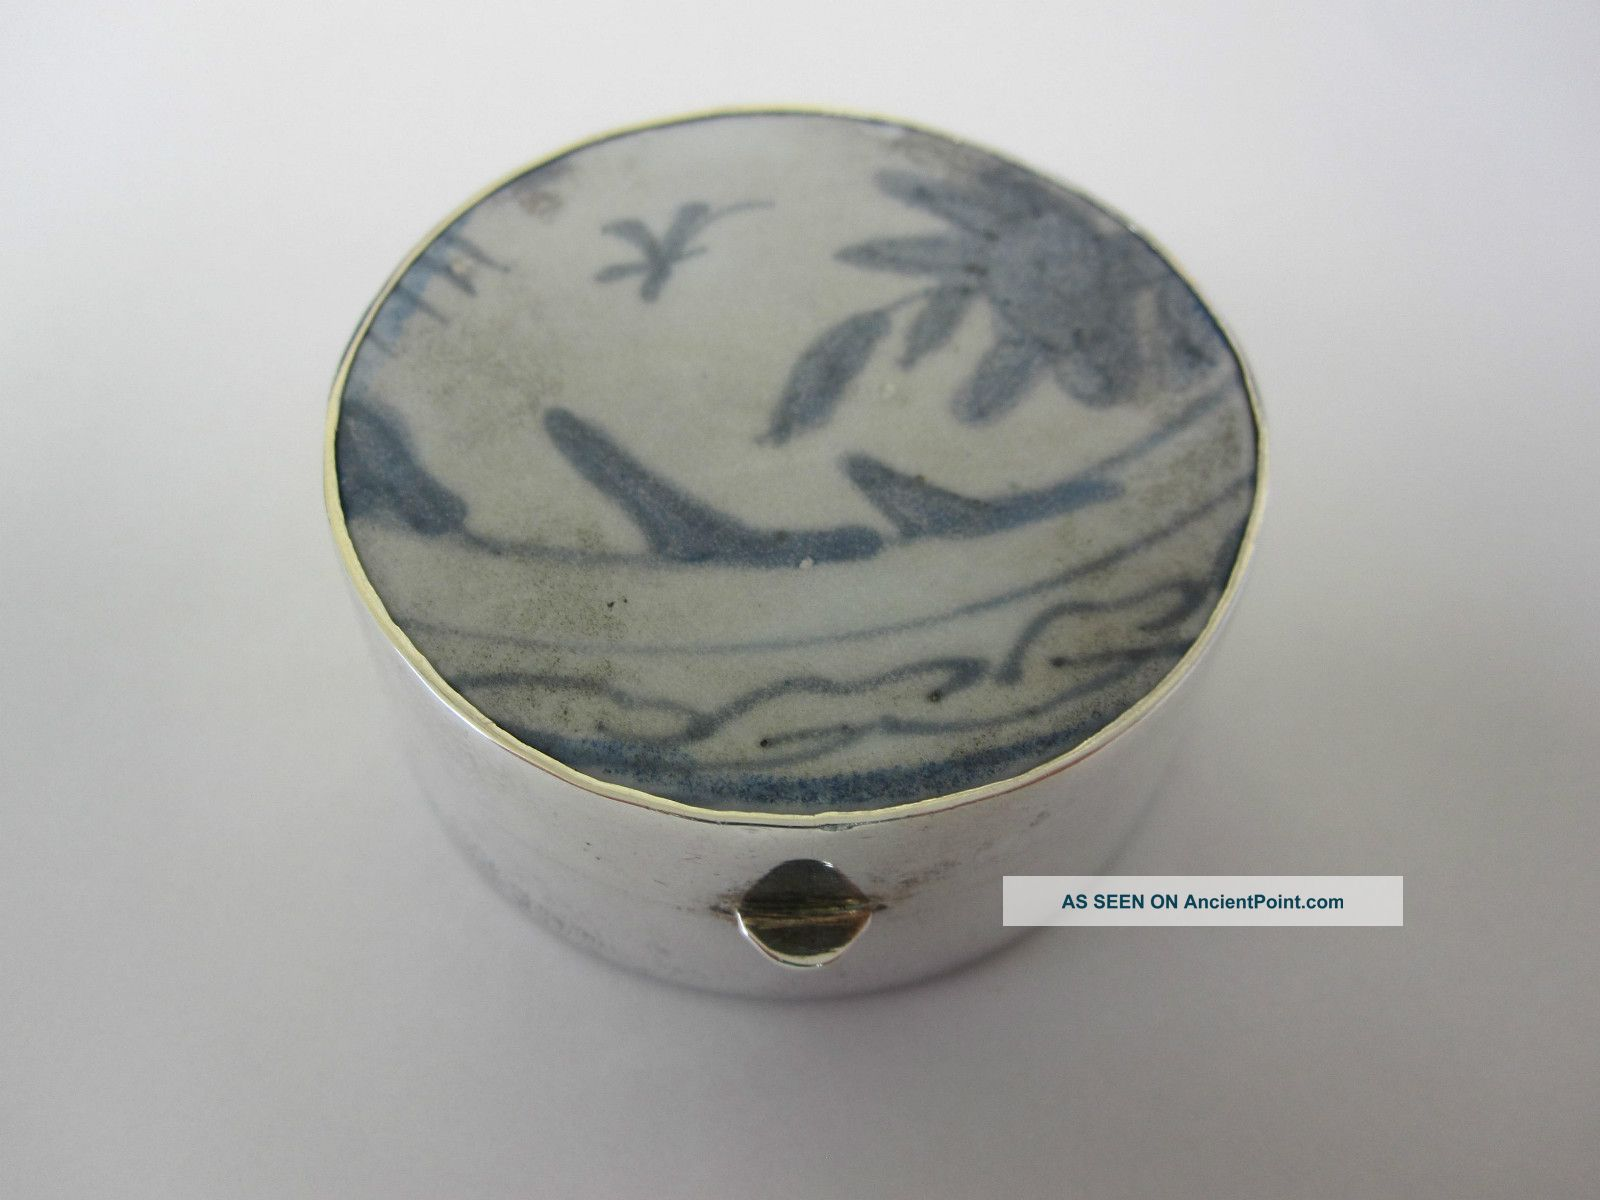 Ming Dynasty Porcelain Box Mounted With Sterling Silver Asia photo